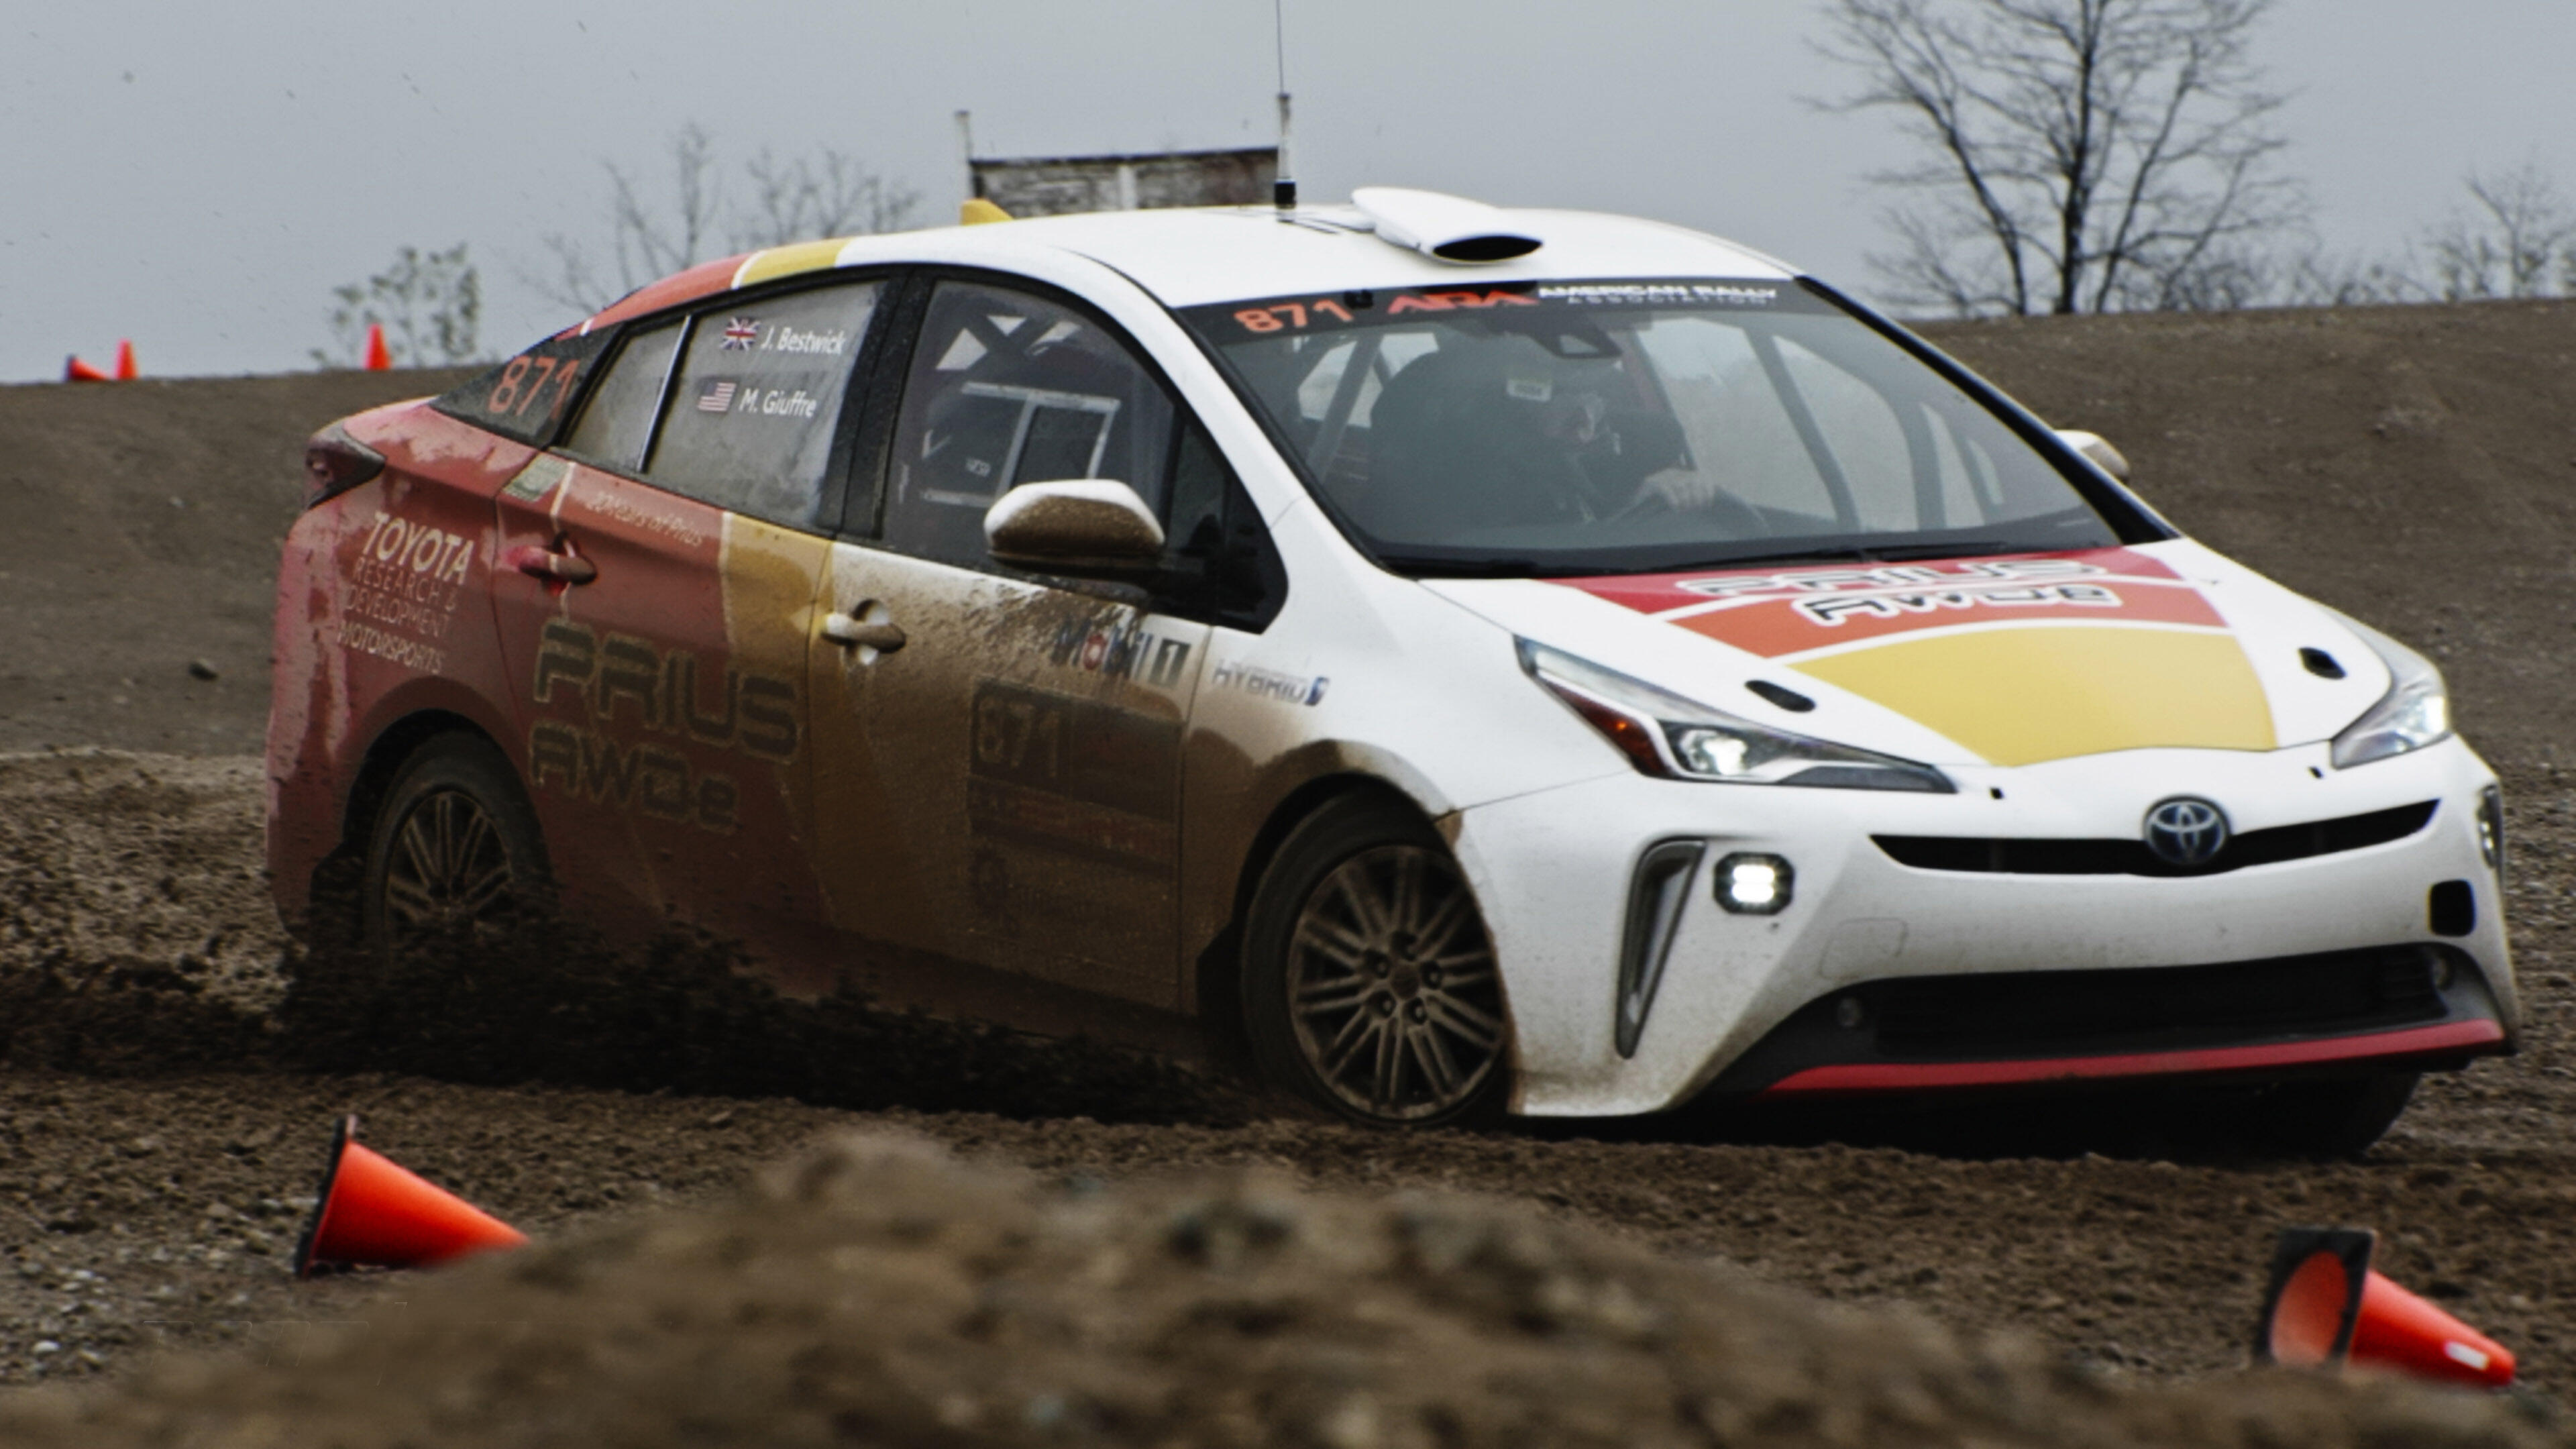 Video: Toyota built a Prius rally car and it's pretty awesome